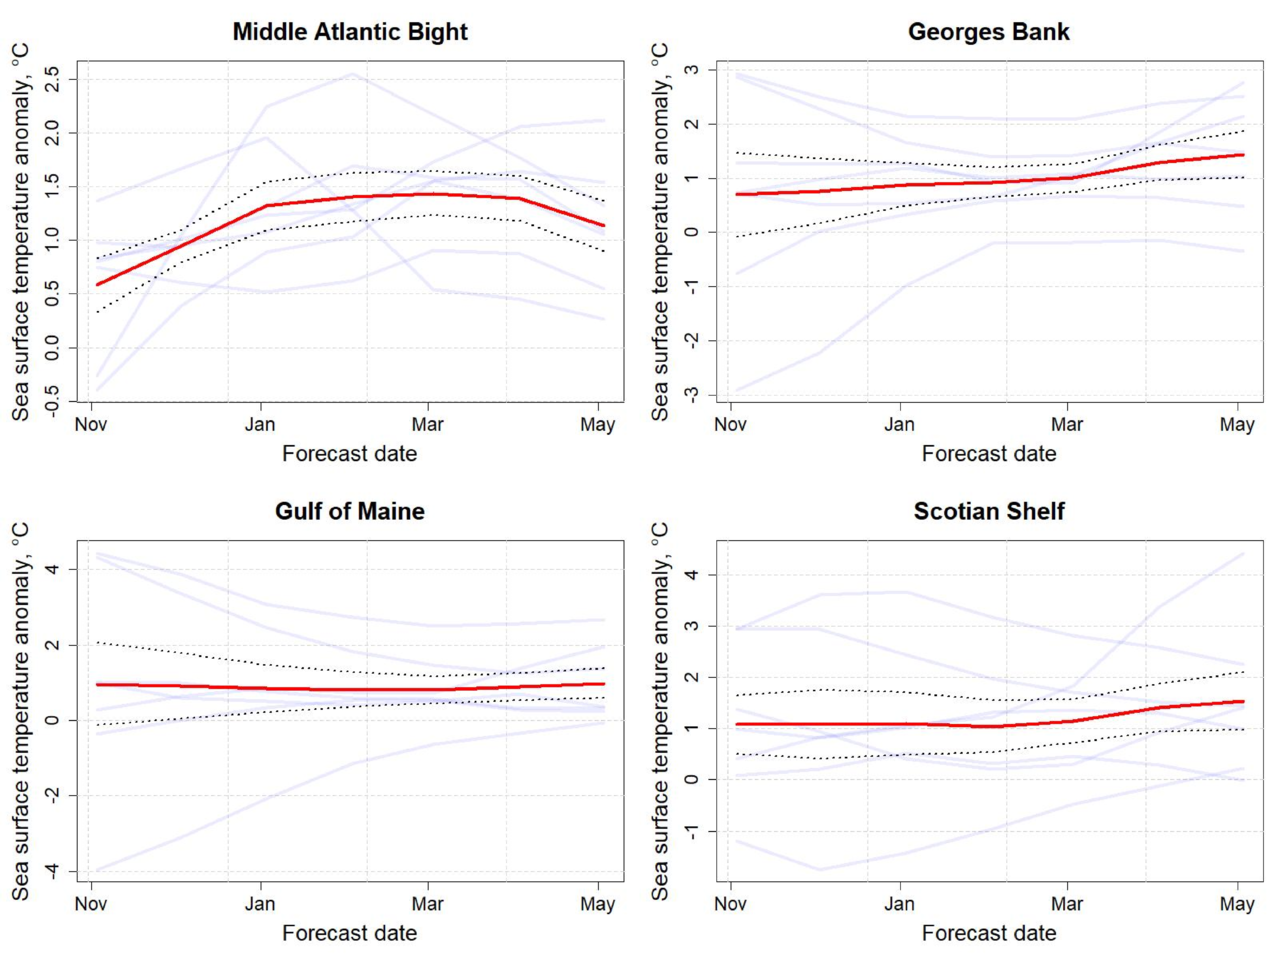 Graphs showing the ecosystem forecast of sea temperature from November 2019 to May 2020.  Top Row:  Middle Atlantic Bight and Georges Bank.  Bottom Row: Gulf of Maine and Scotian Shelf.